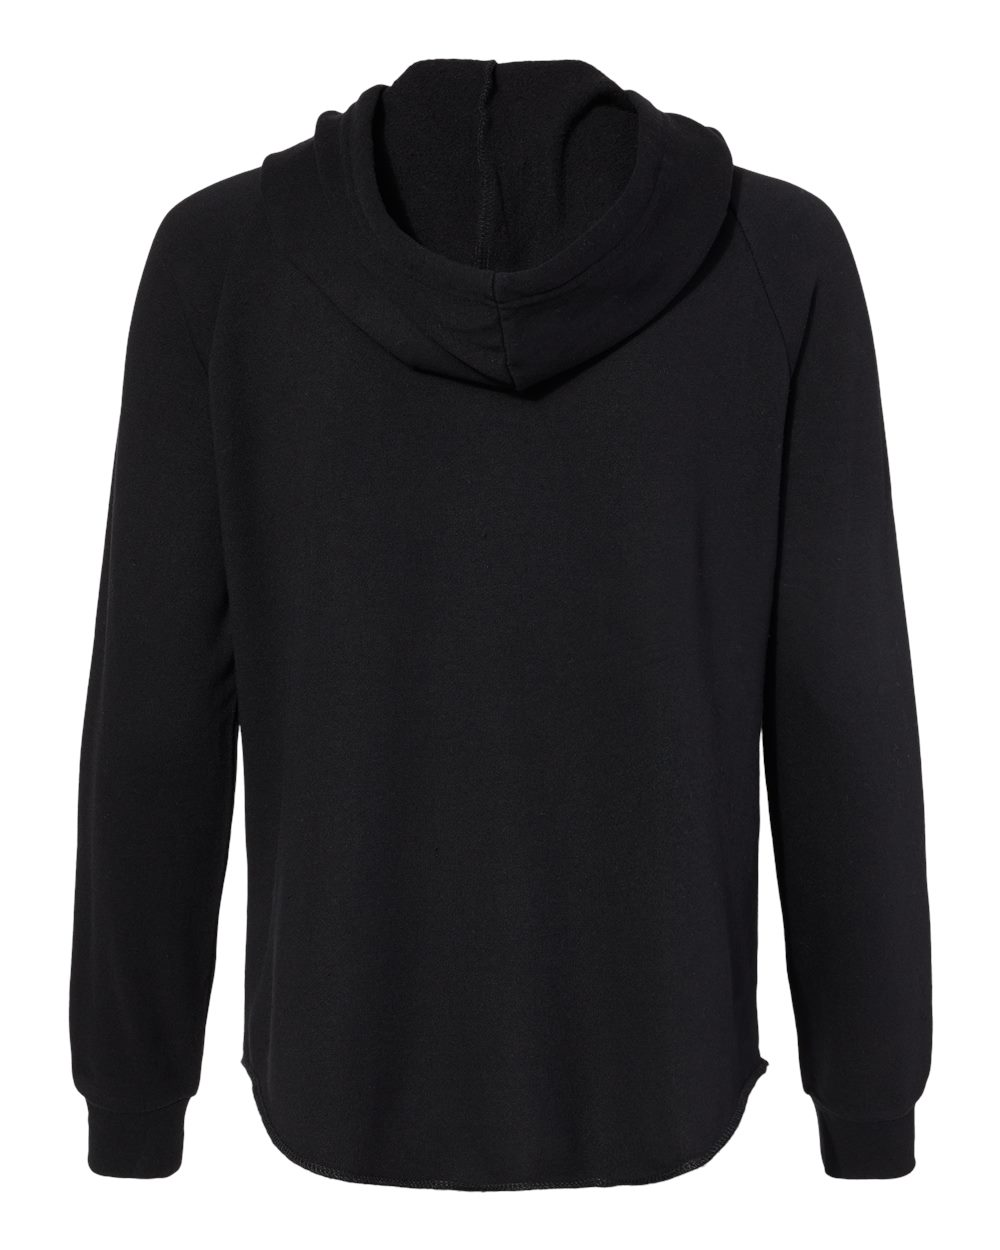 Independent-Trading-Co-Women-039-s-Wave-Wash-Full-Zip-Hooded-Sweatshirt-PRM2500Z thumbnail 6